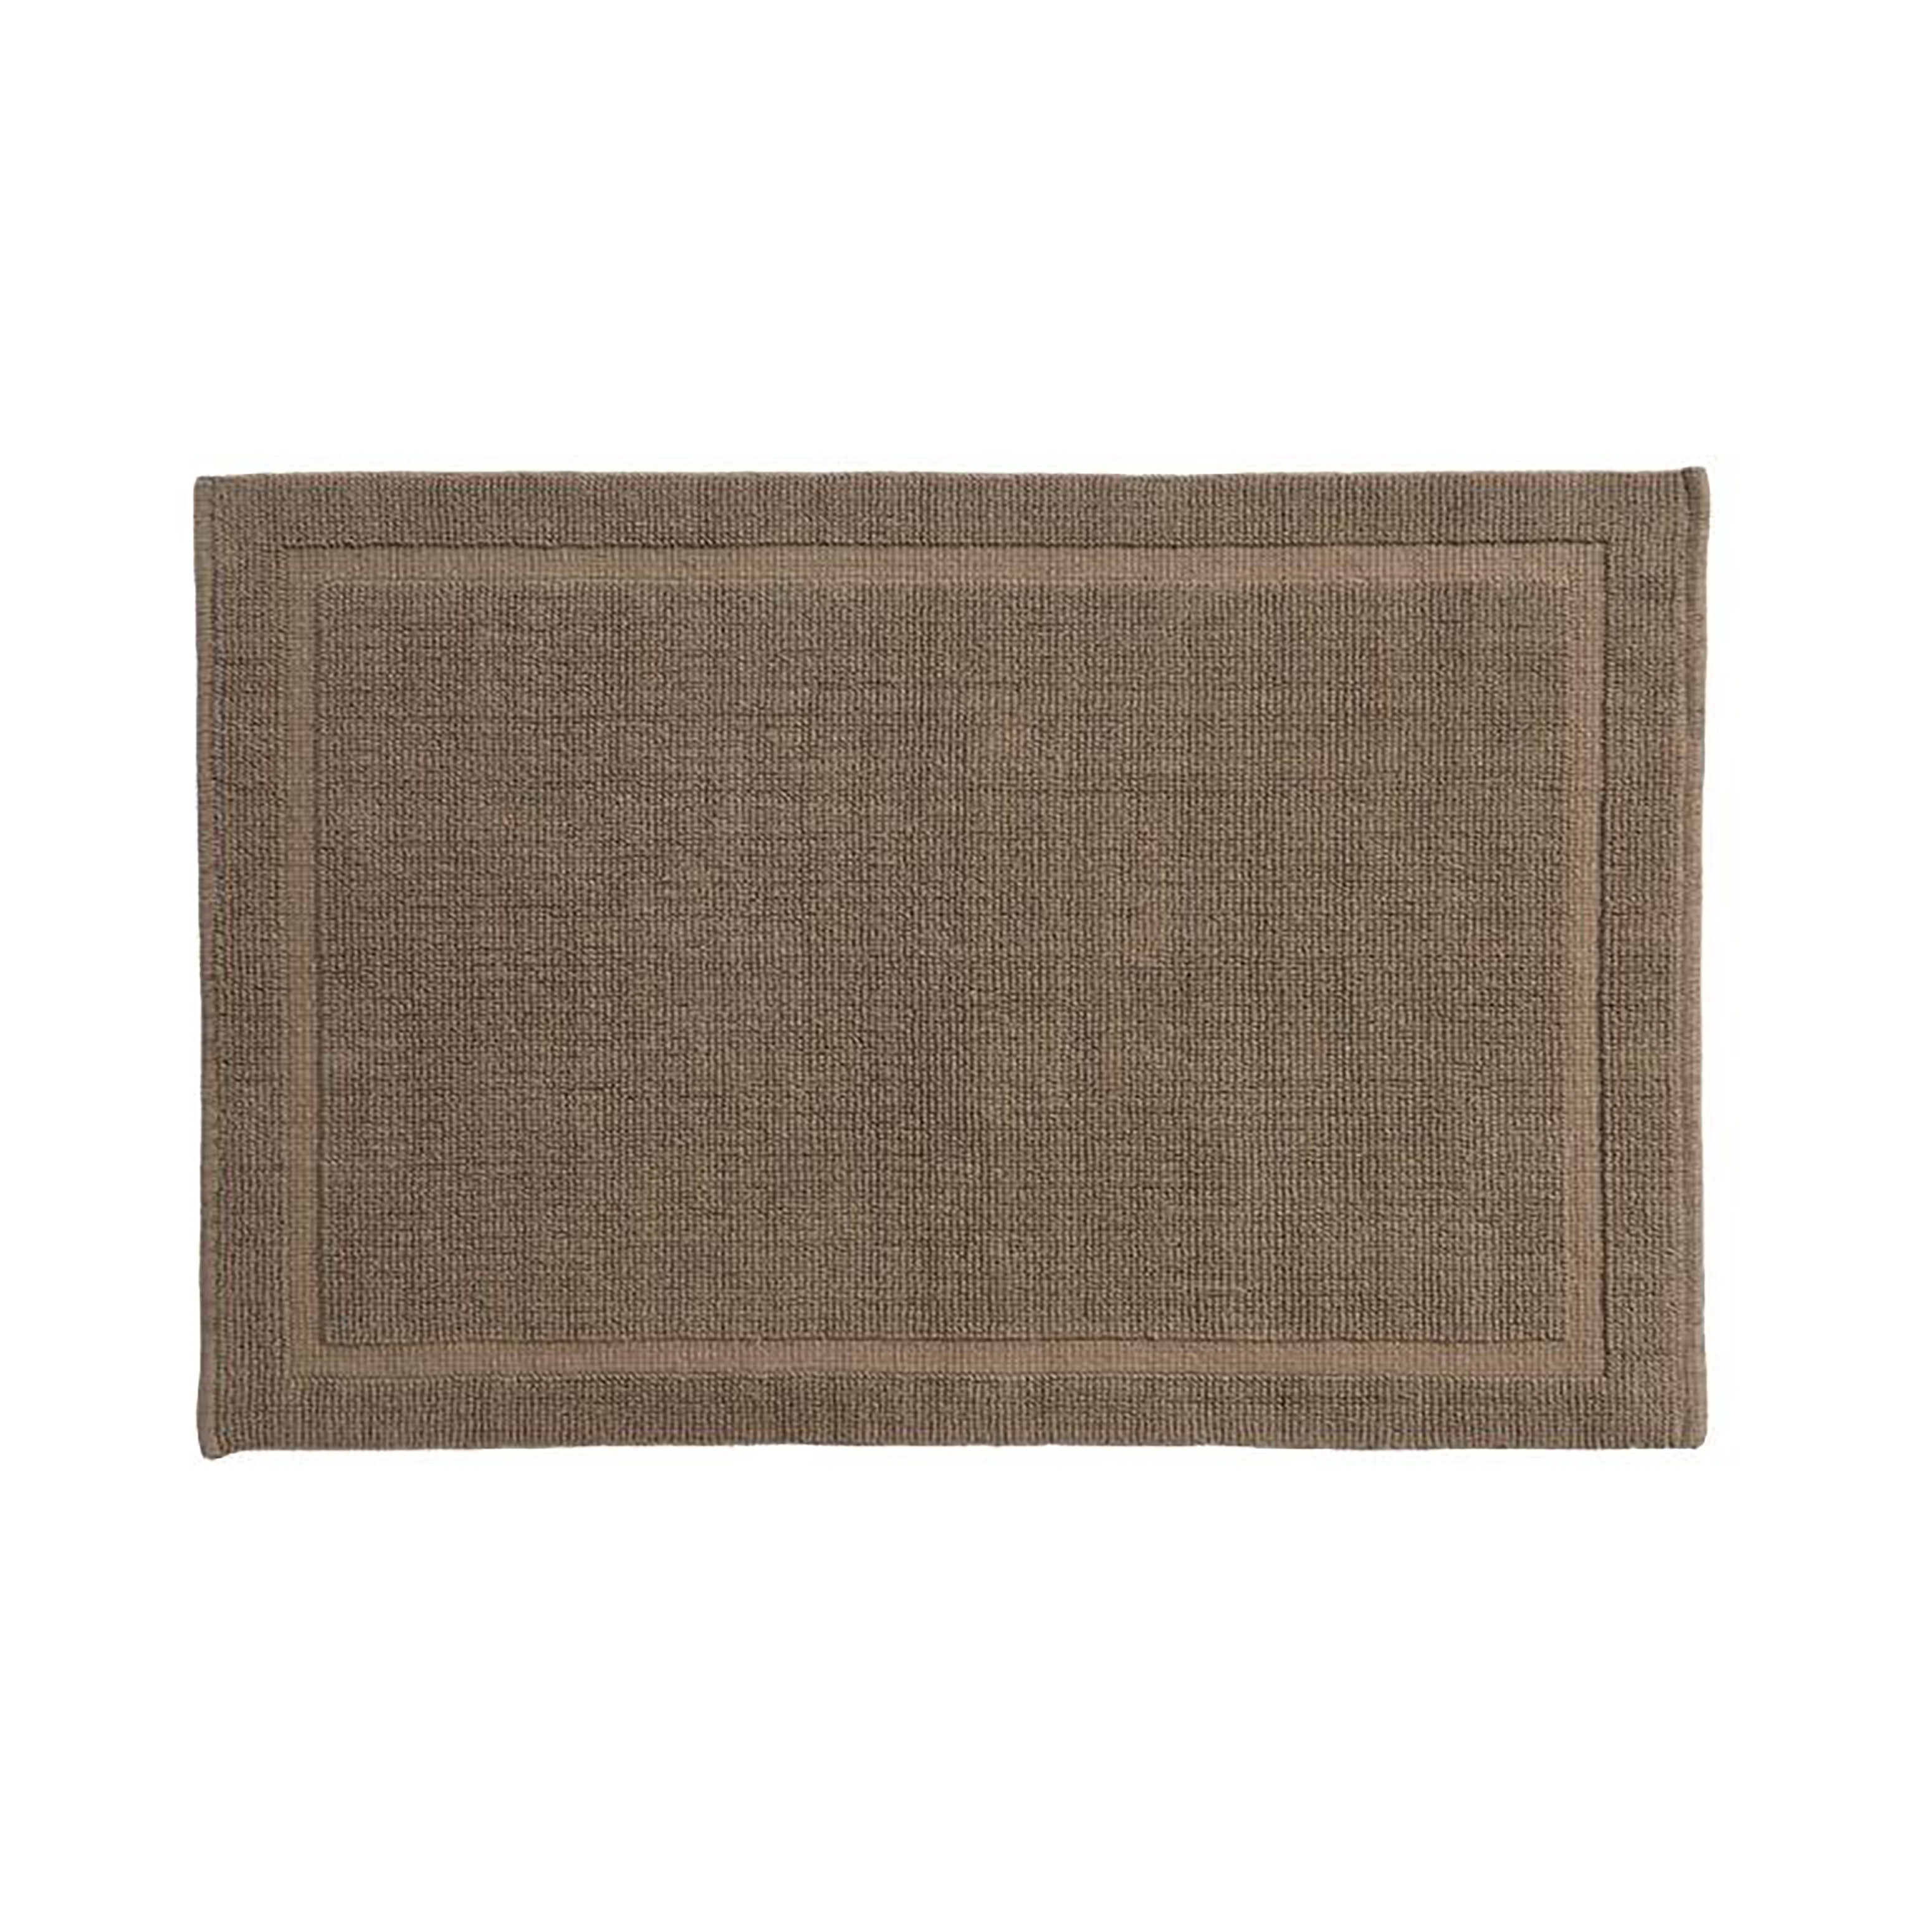 Mohawk Cotton Bath Rugs